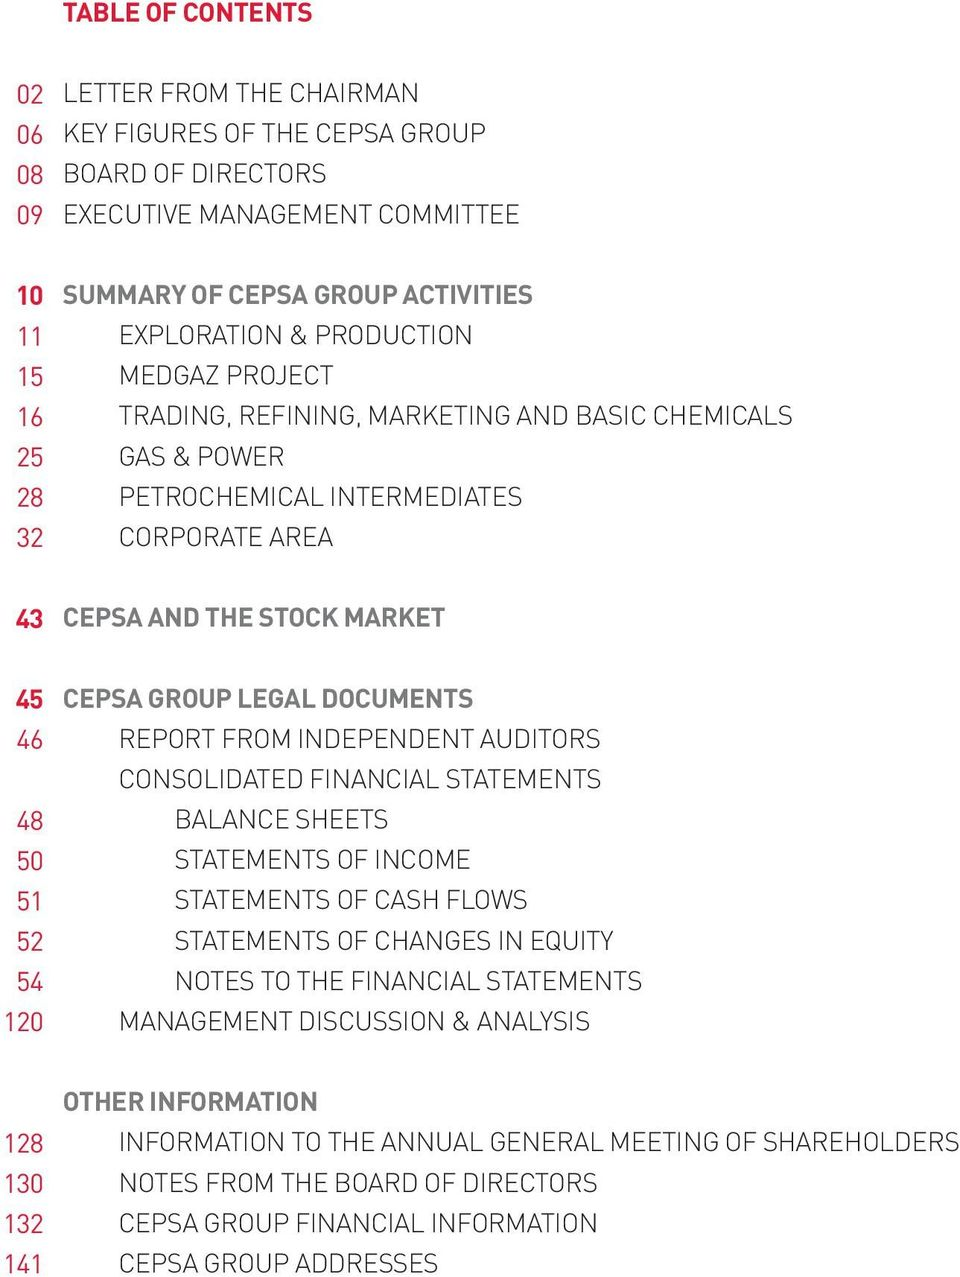 CEPSA GROUP LEGAL DOCUMENTS REPORT FROM INDEPENDENT AUDITORS CONSOLIDATED FINANCIAL STATEMENTS BALANCE SHEETS STATEMENTS OF INCOME STATEMENTS OF CASH FLOWS STATEMENTS OF CHANGES IN EQUITY NOTES TO